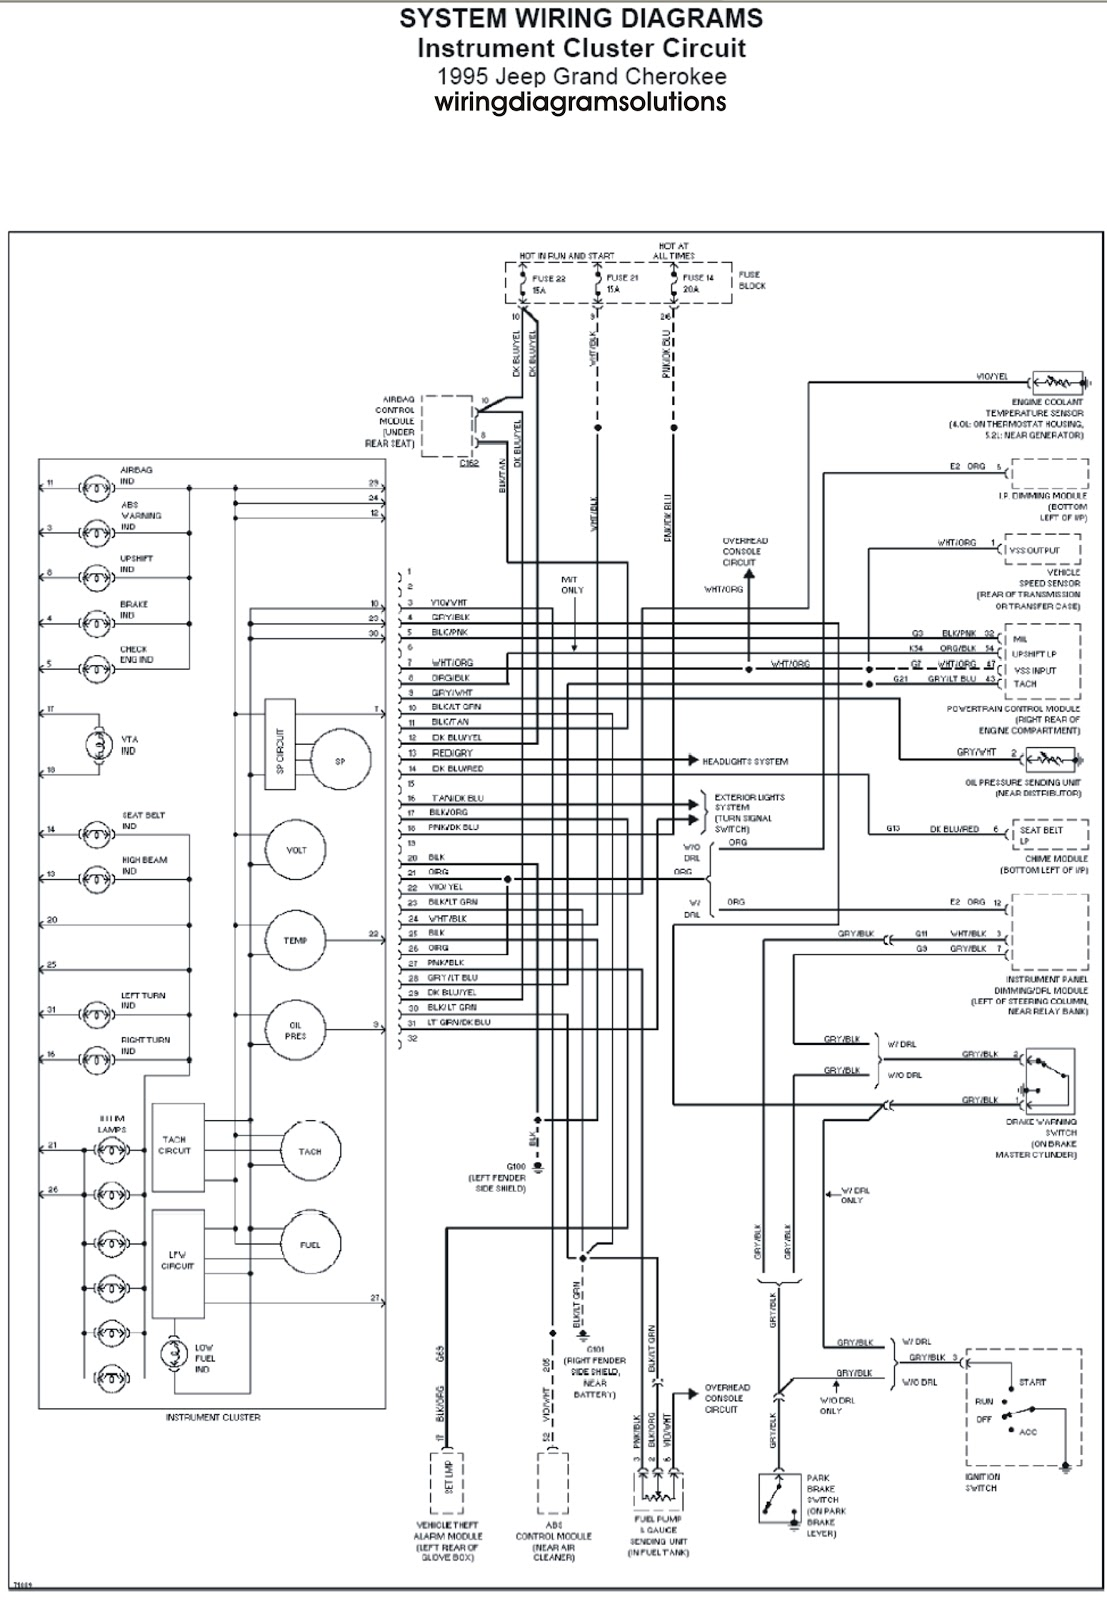 medium resolution of 1998 jeep 4 0 wiring schematic simple wiring diagram jeep grand cherokee 4 0 engine 1993 jeep